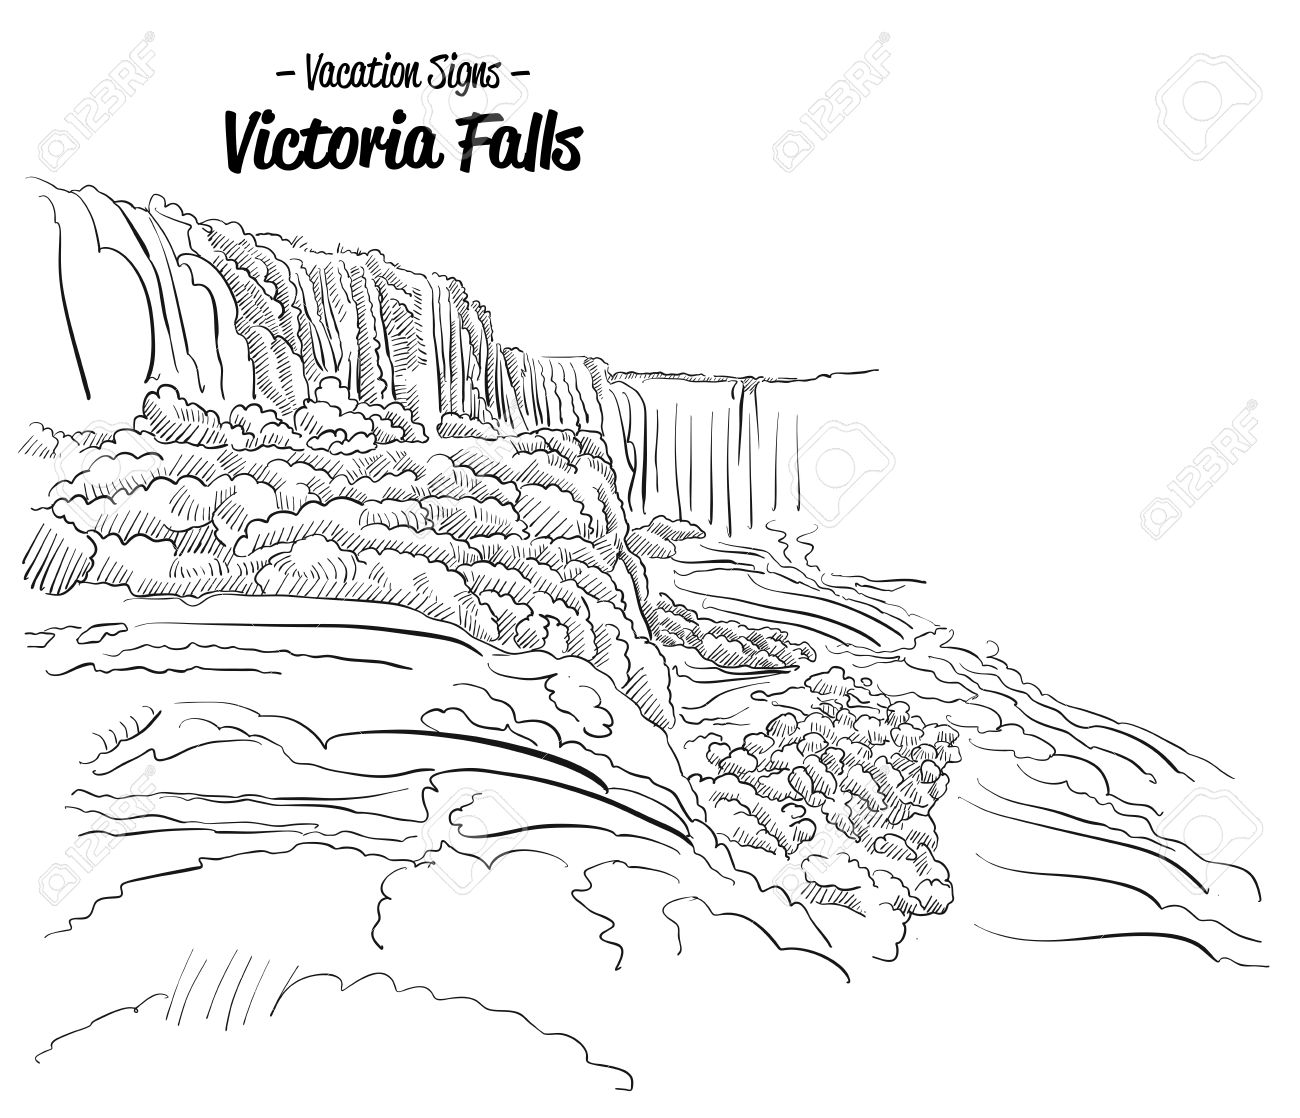 Victoria Falls Coloring Download Victoria Falls Coloring